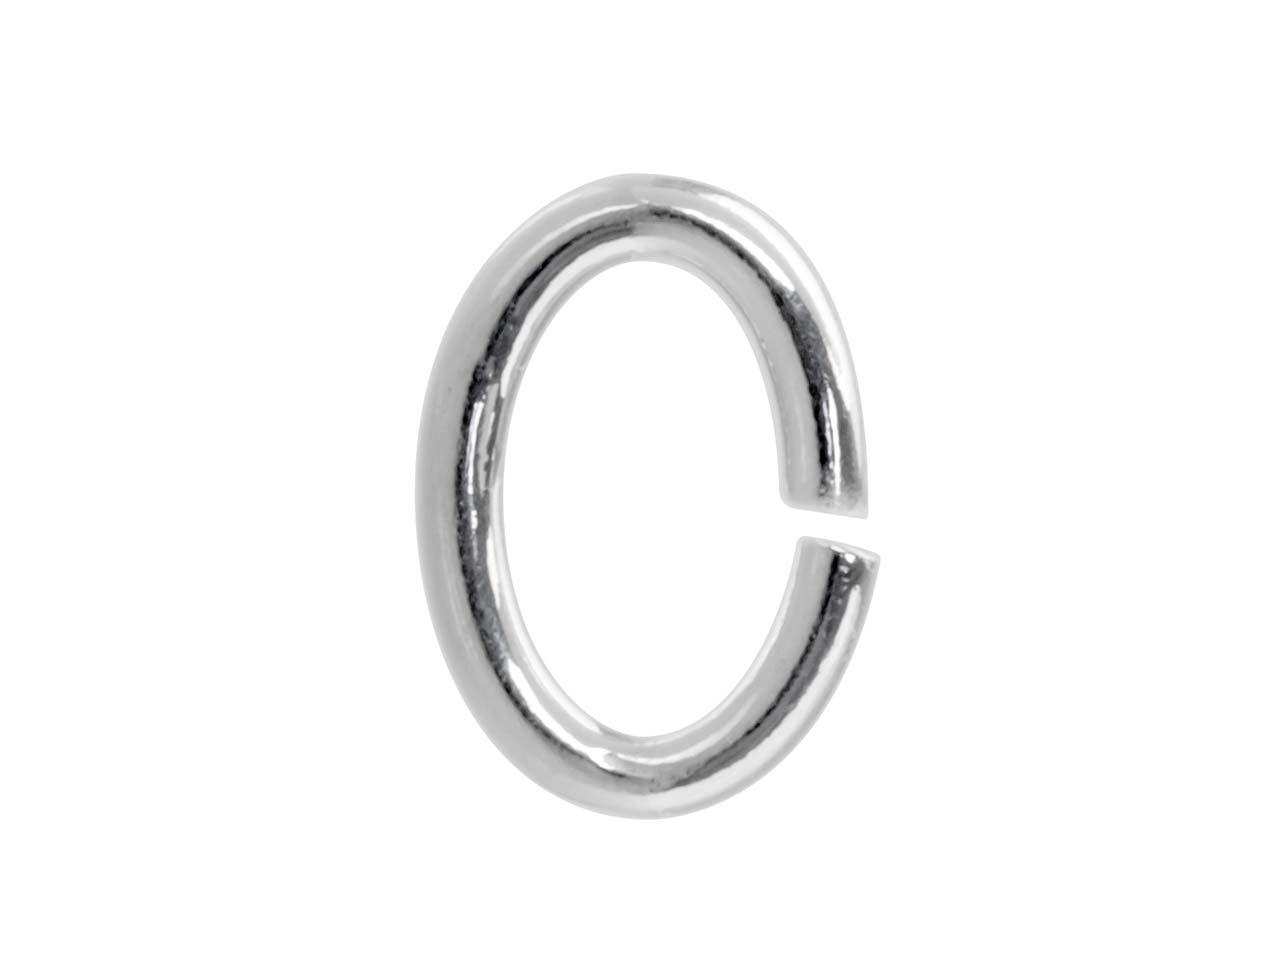 Sterling Silver Jump Ring Oval 6mm, Pack of 20